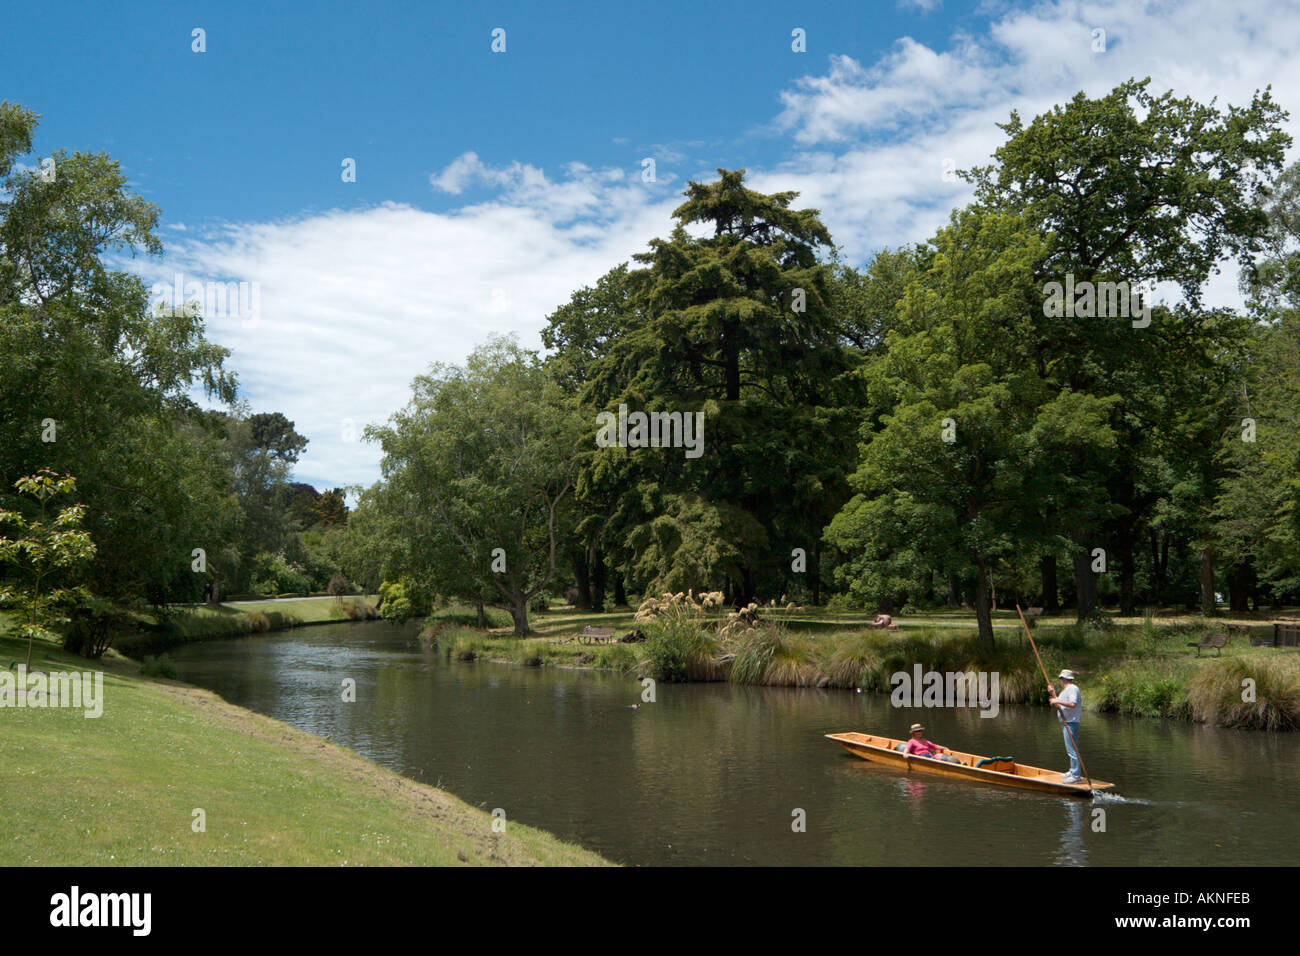 Couple punting on the Avon River in the Botanic Gardens, Christchurch, South Island, New Zealand - Stock Image